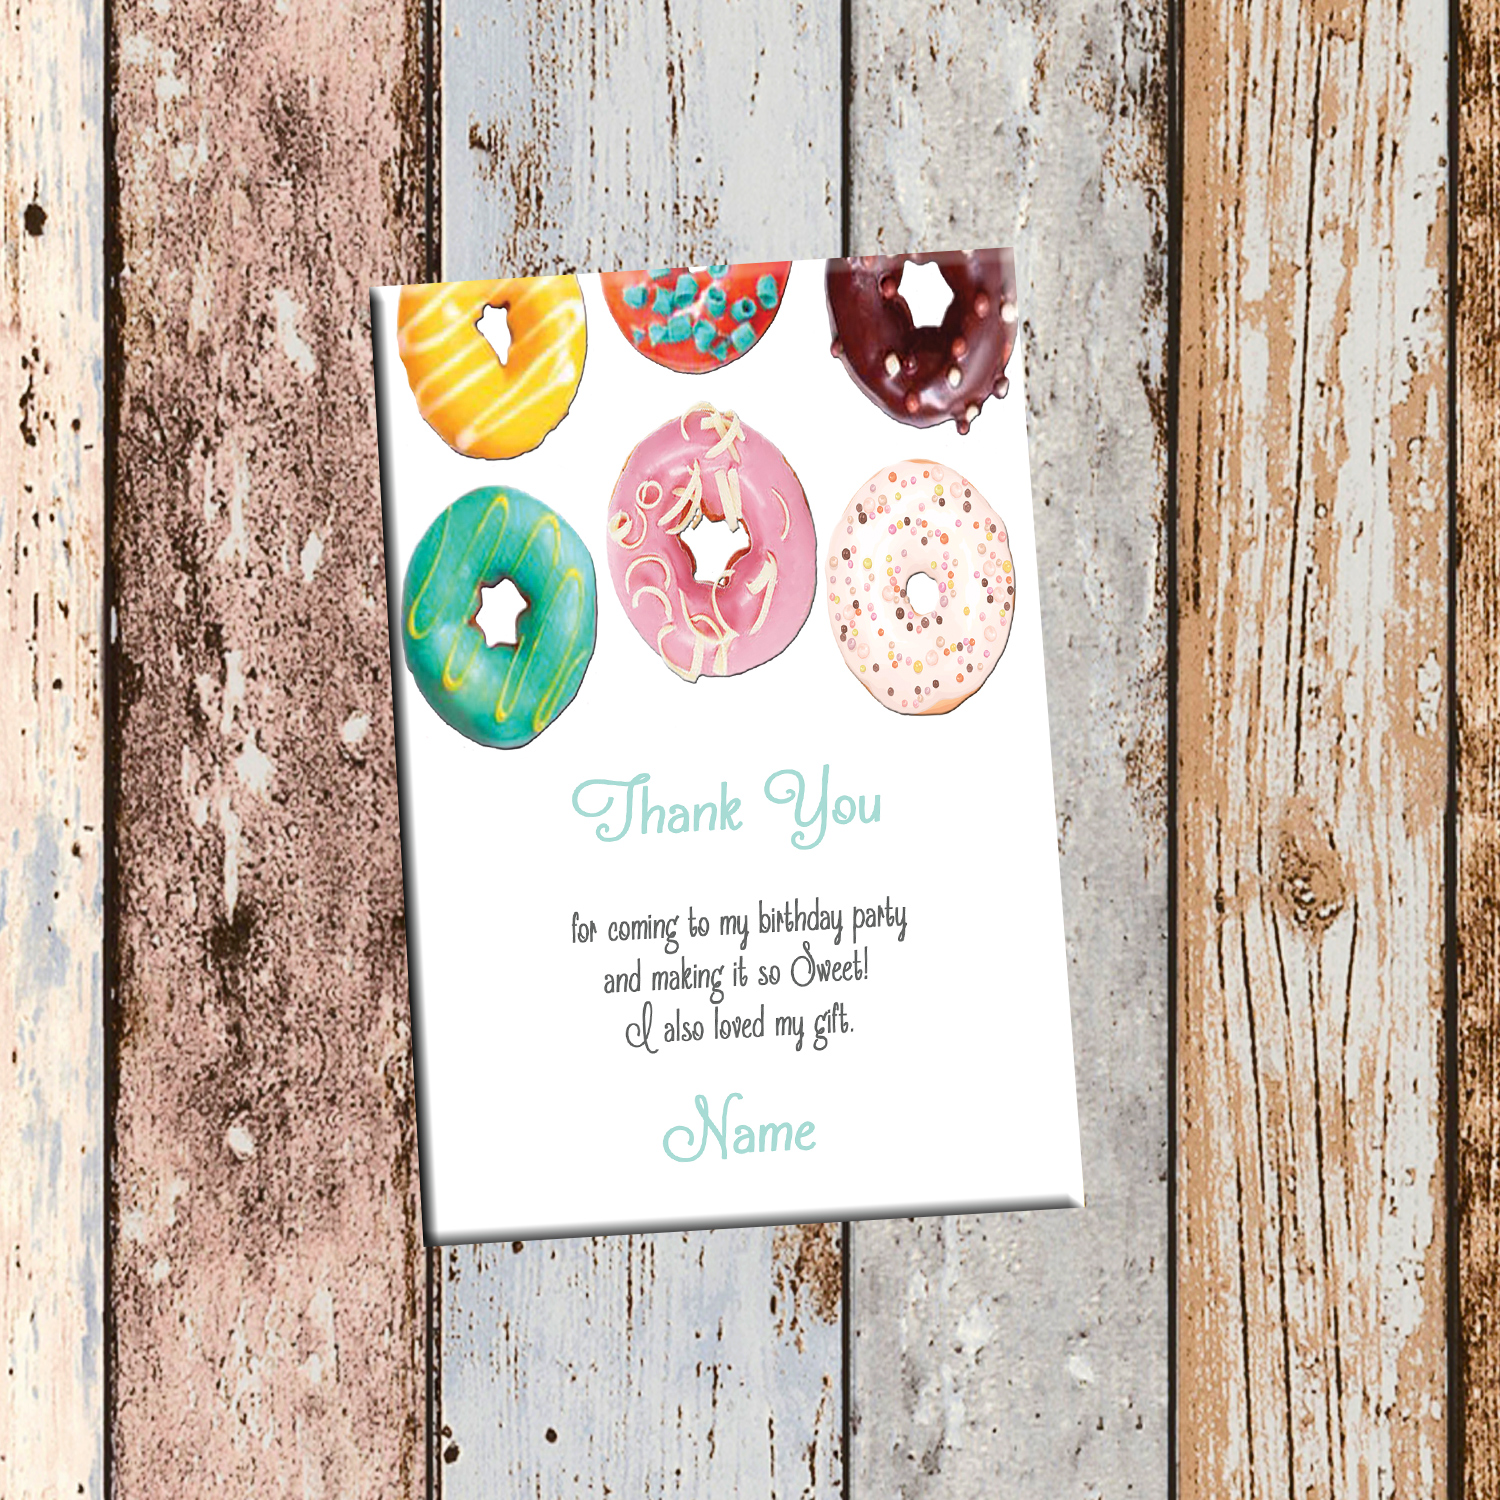 Donut Sweets Personalized Birthday Invitation 2-Sided, Birthday Card ...